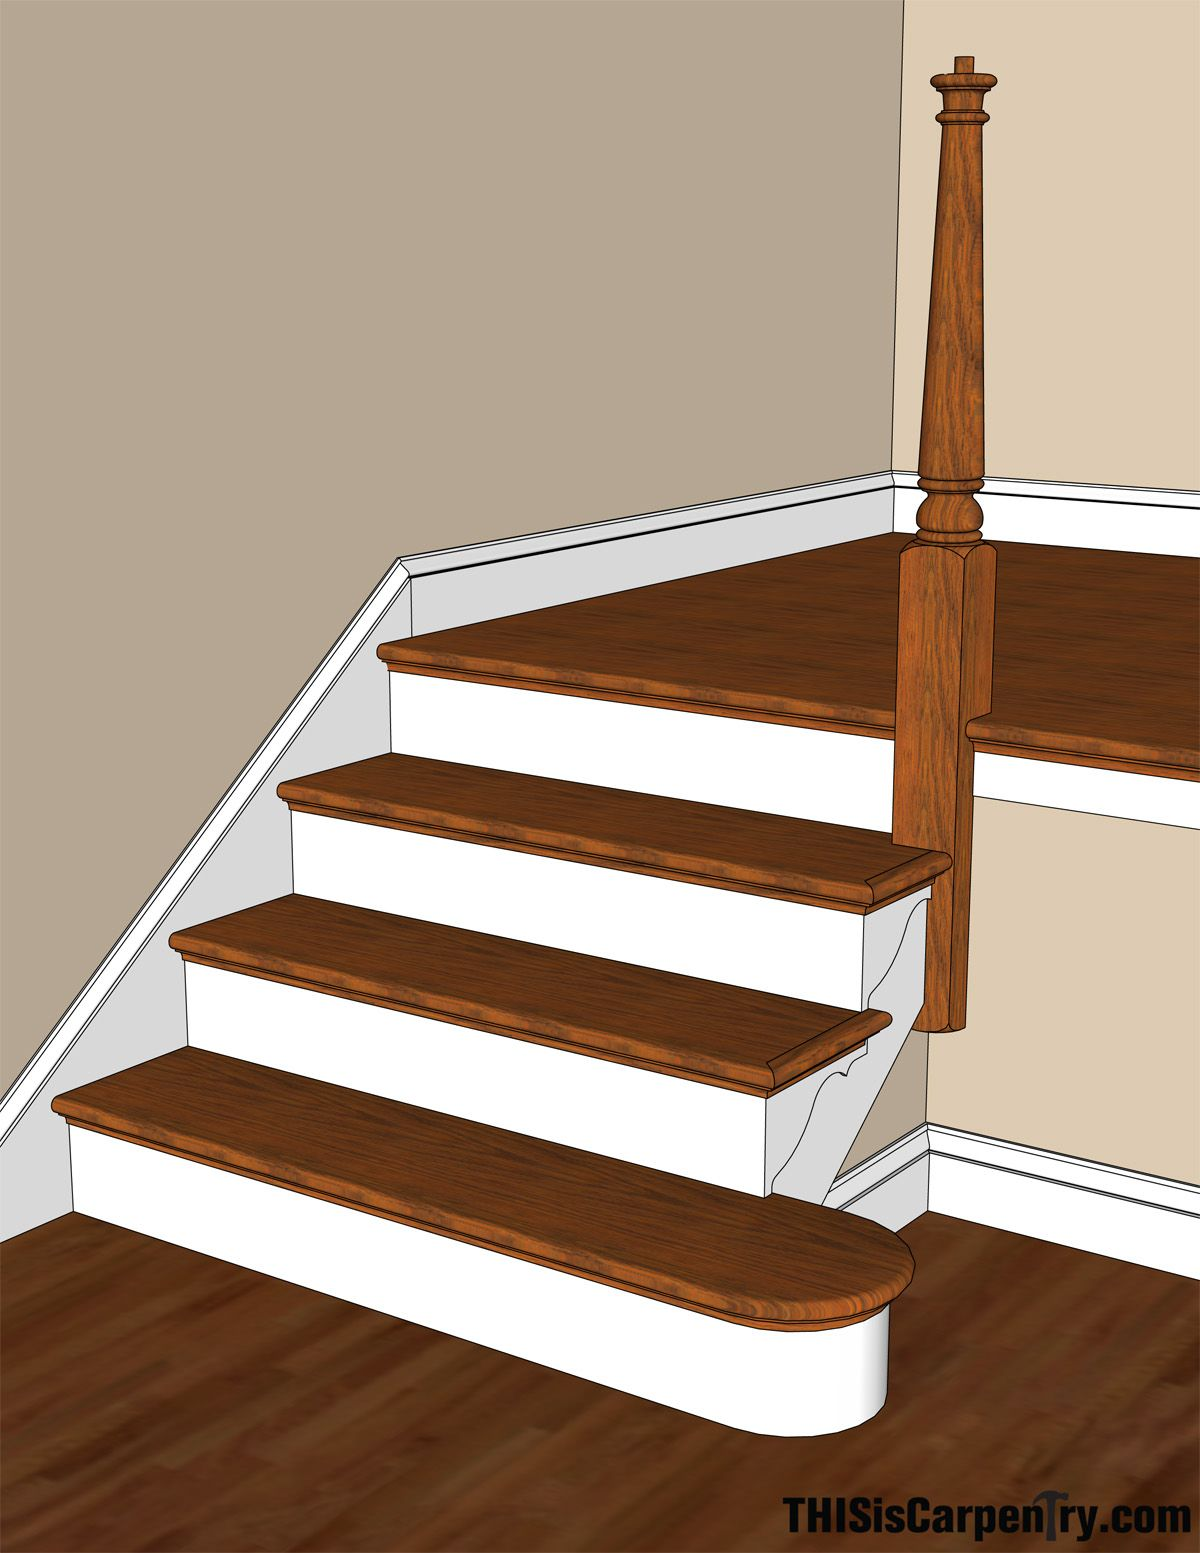 Basement Stair Trim: Pin By Sarah Friend On Reno/construction In 2019